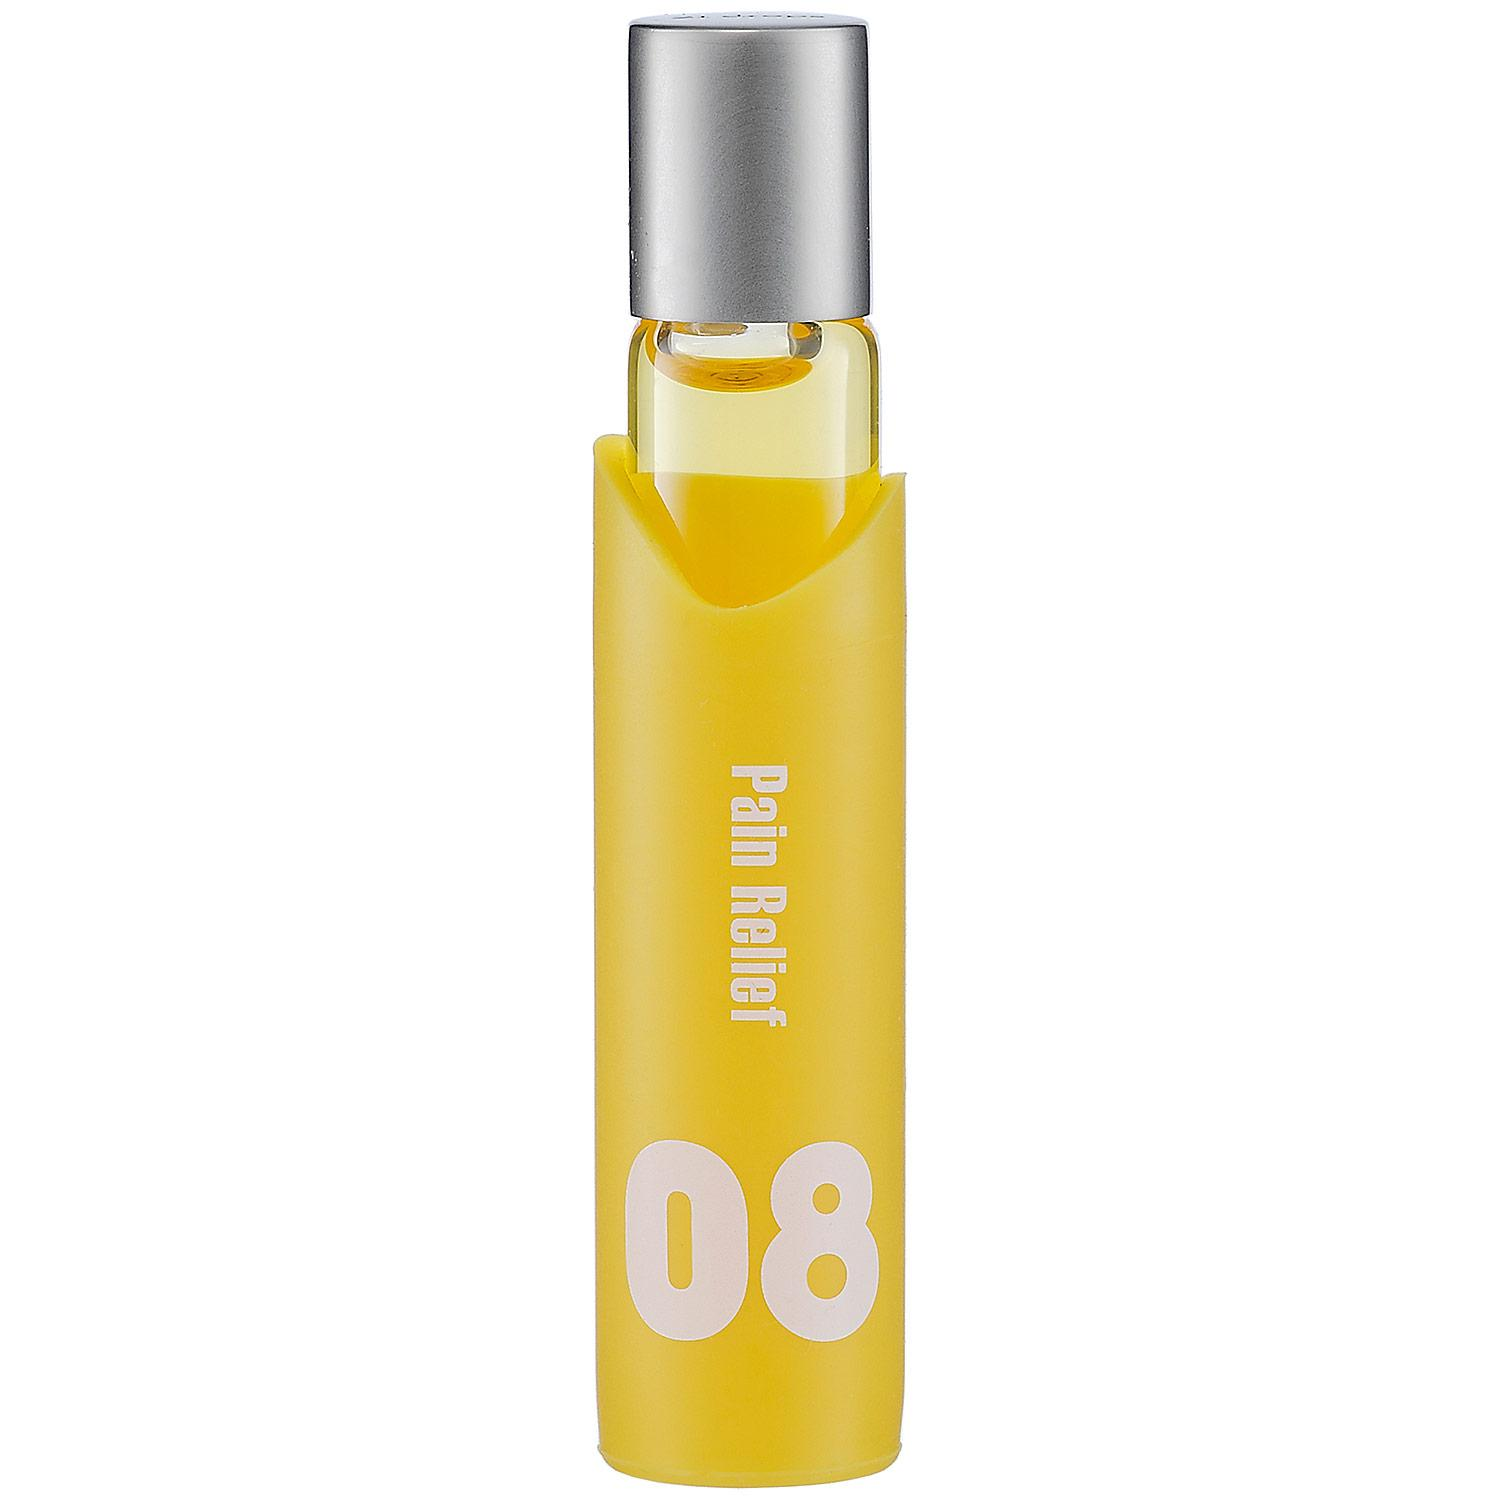 08 Pain Relief Essential Oil Rollerball